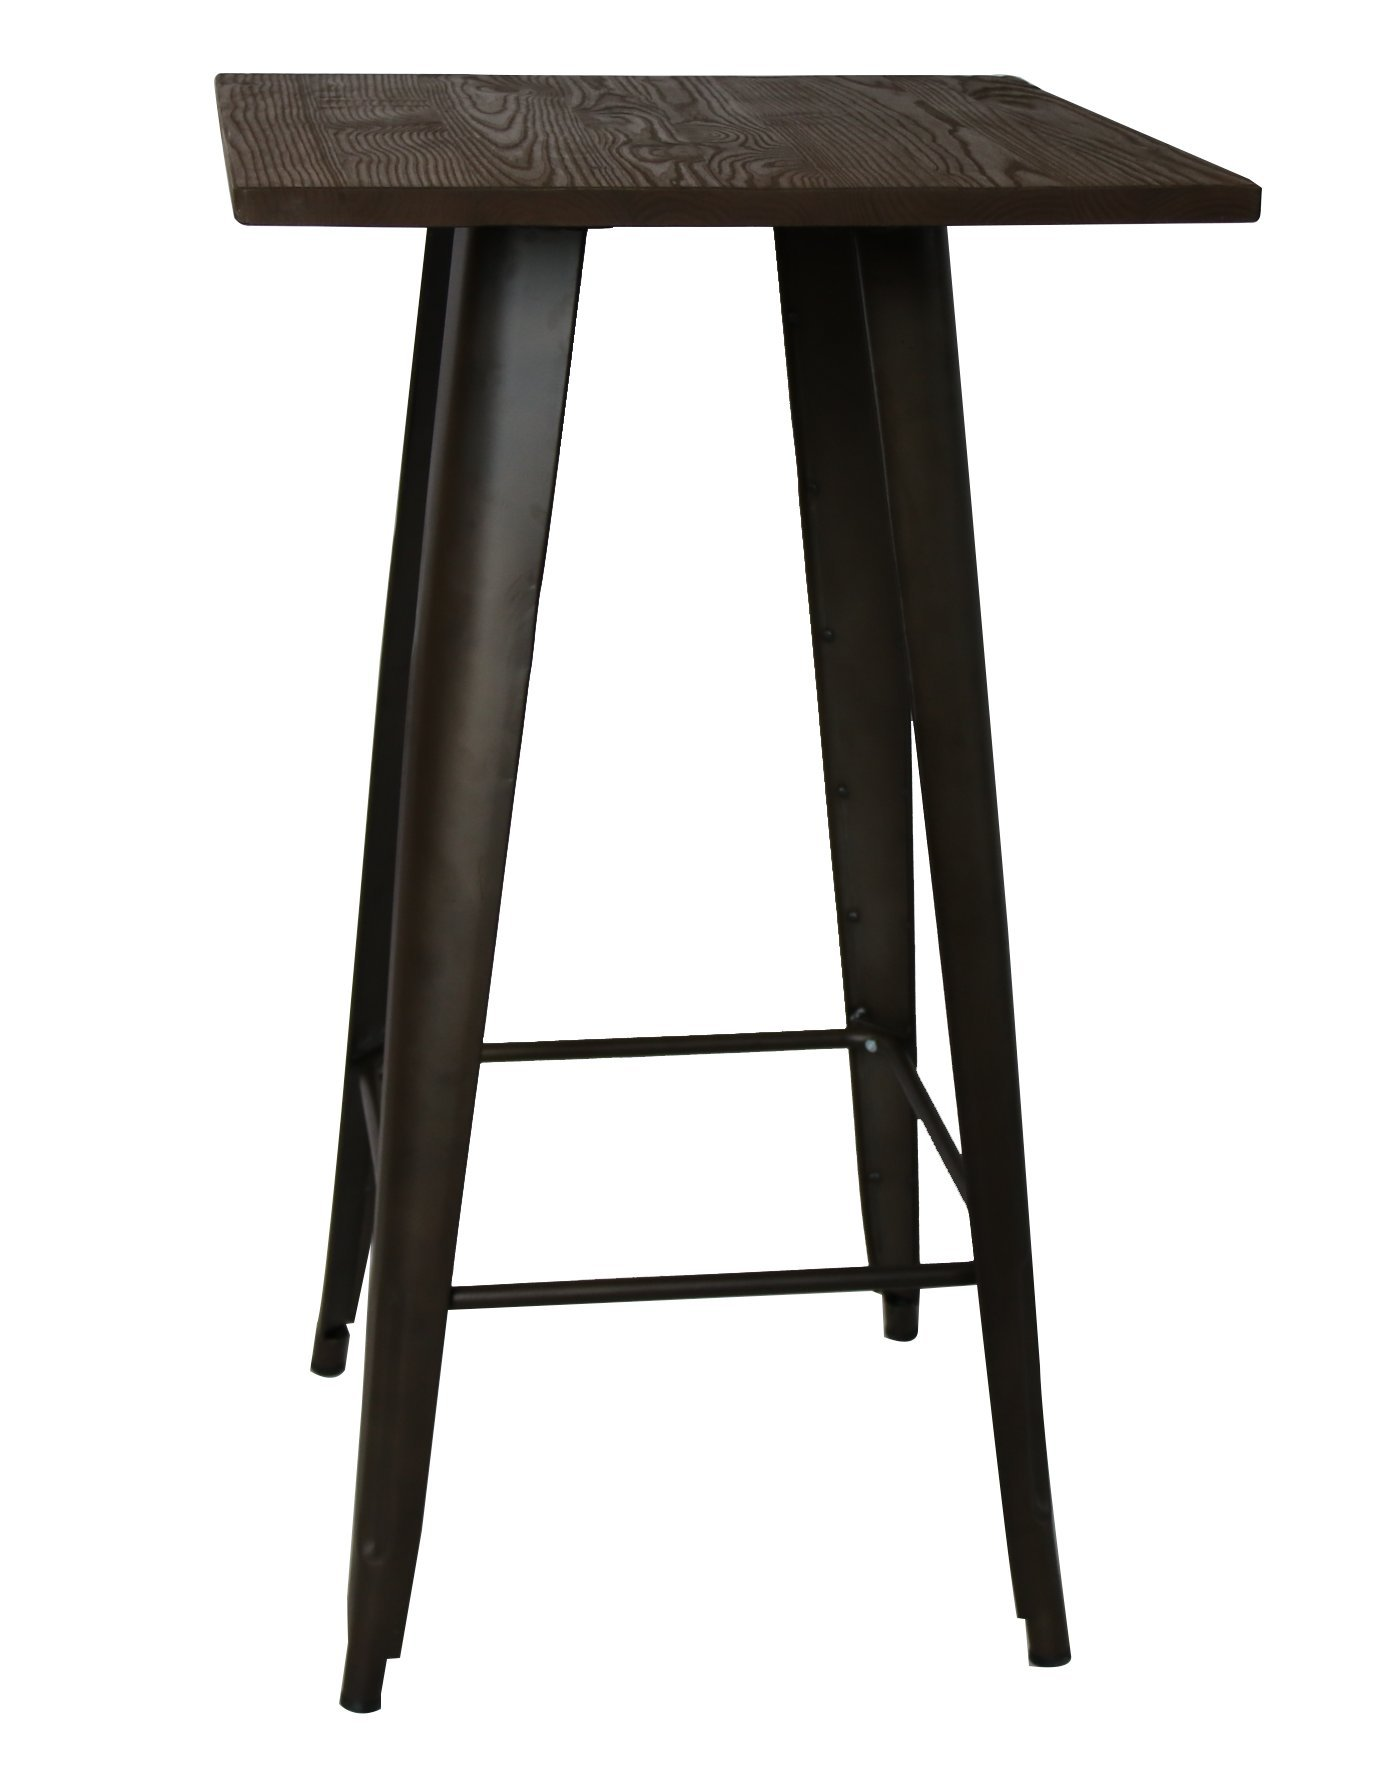 BTEXPERT Industrial Antique Copper Bronze Distressed Rustic Steel Metal Dining Table with Wood Top, Restaurant